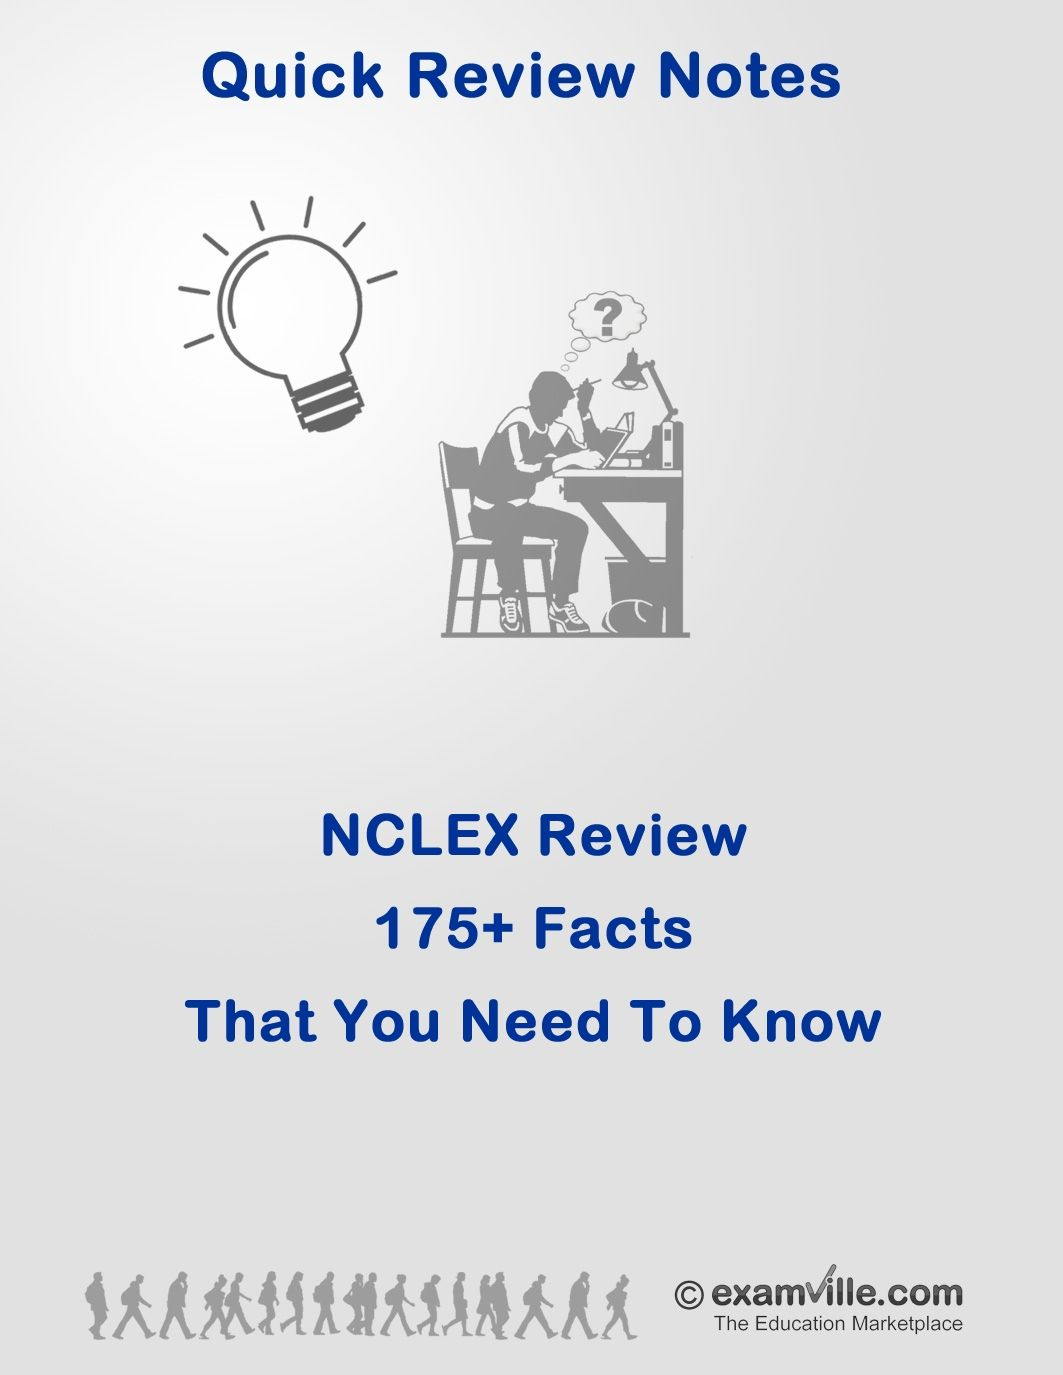 175+ Facts You Need To Know for the NCLEX